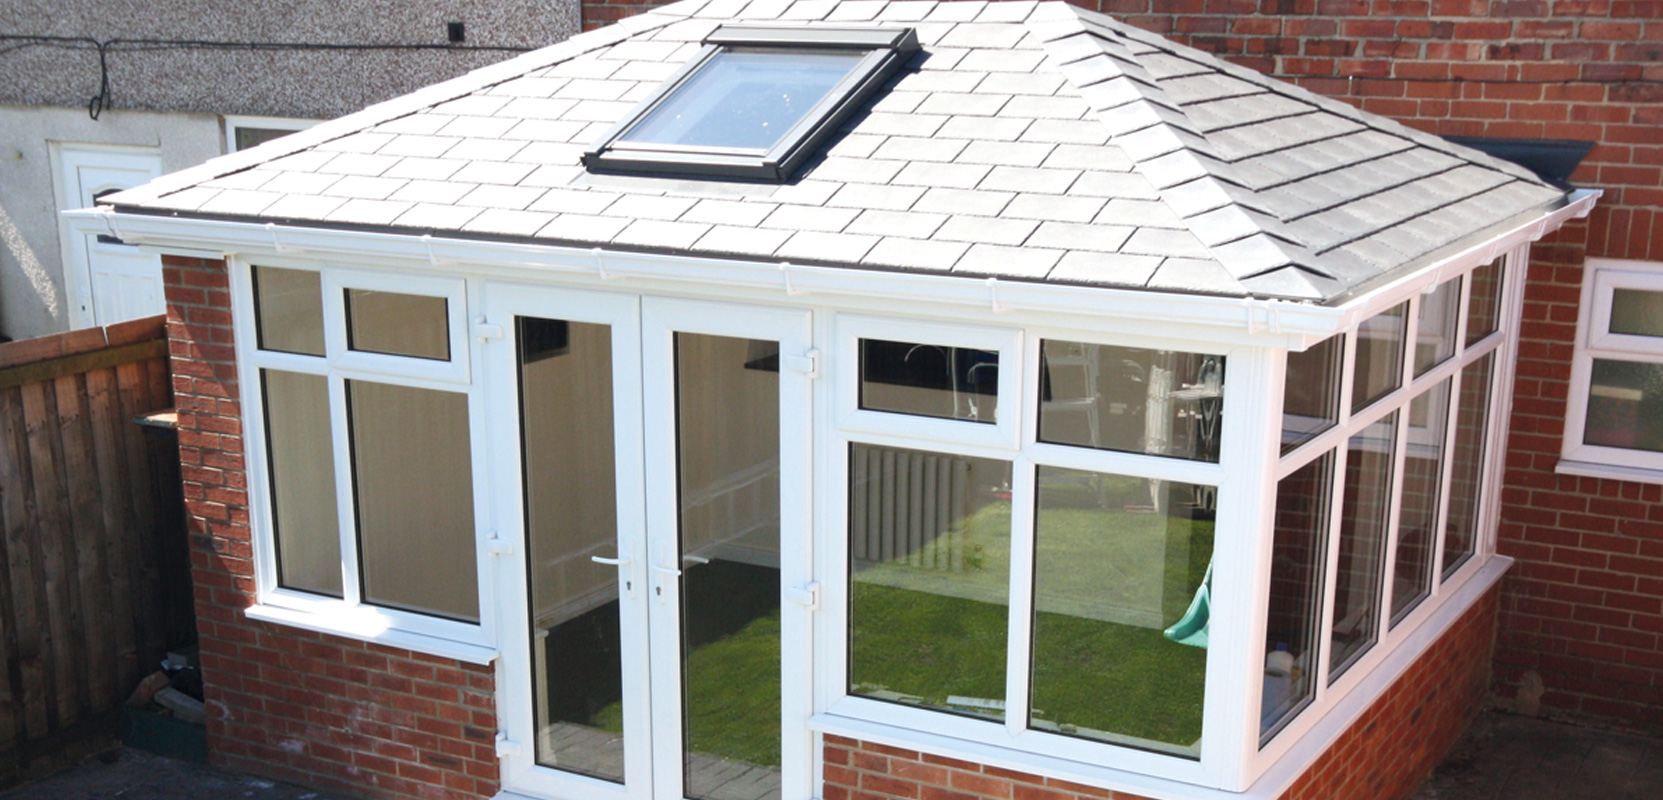 Photo of a conservatory roof